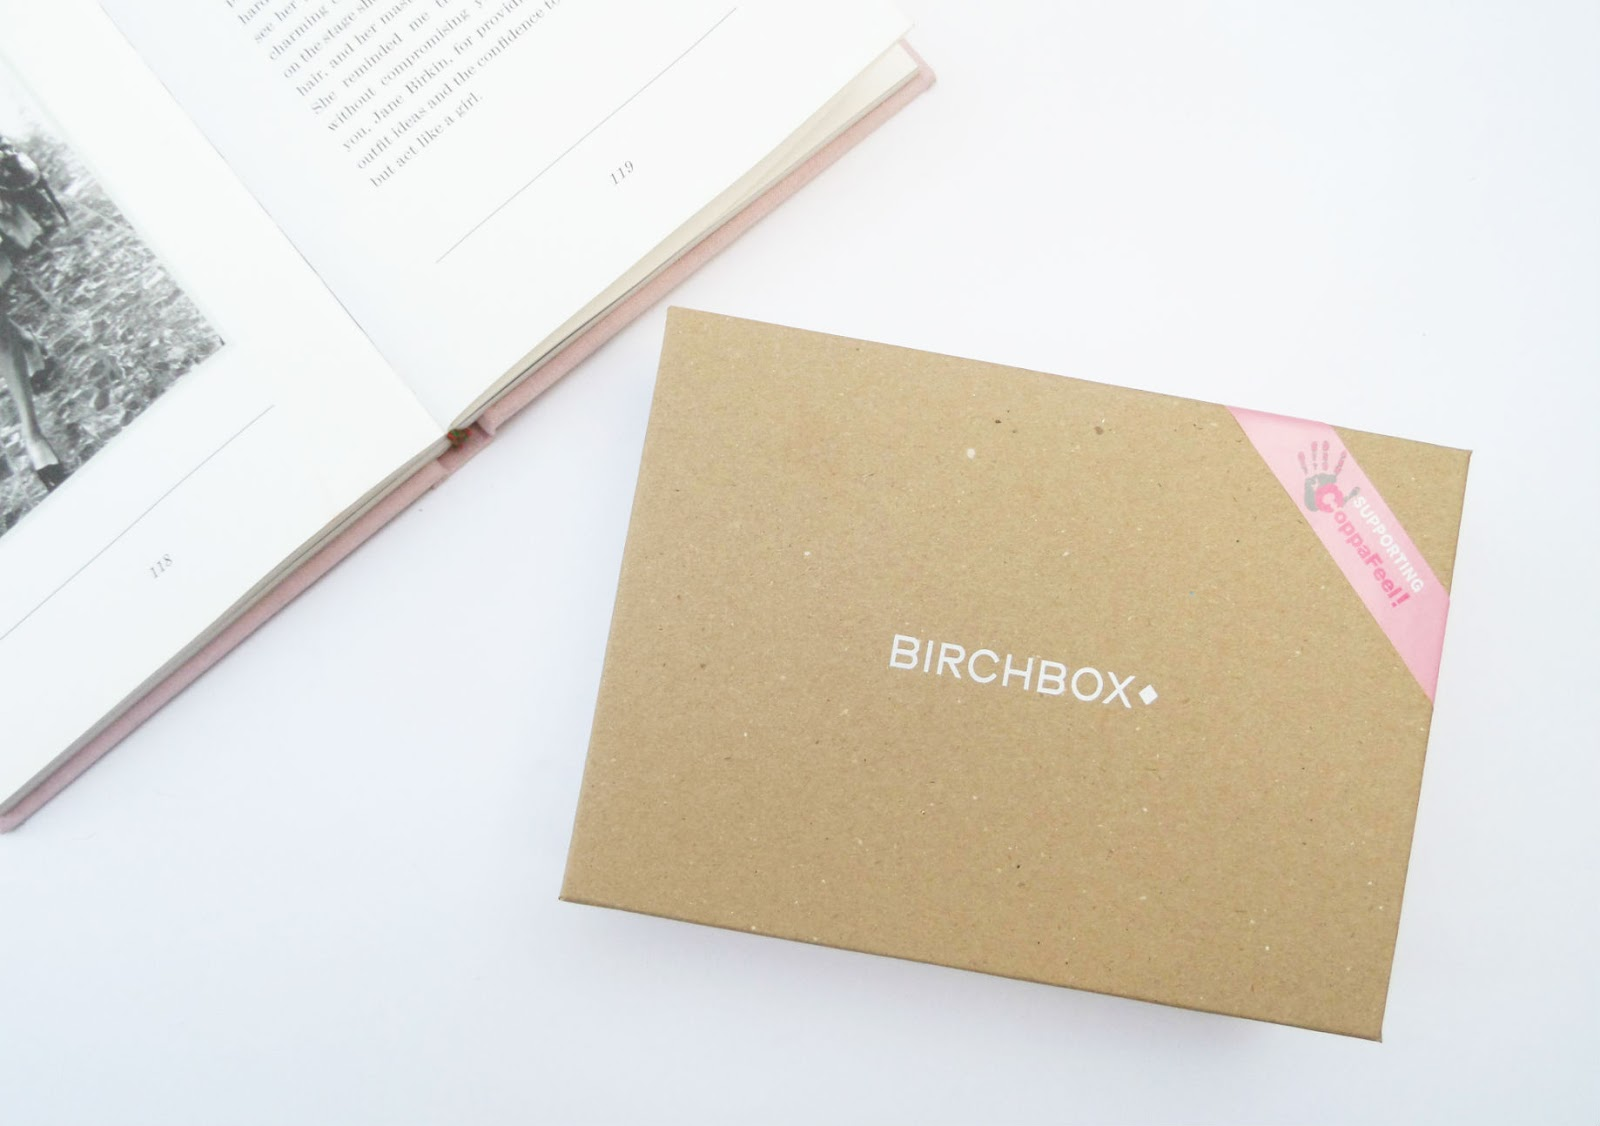 The October 2014 Birchbox | Work It | With CoppaFeel Review